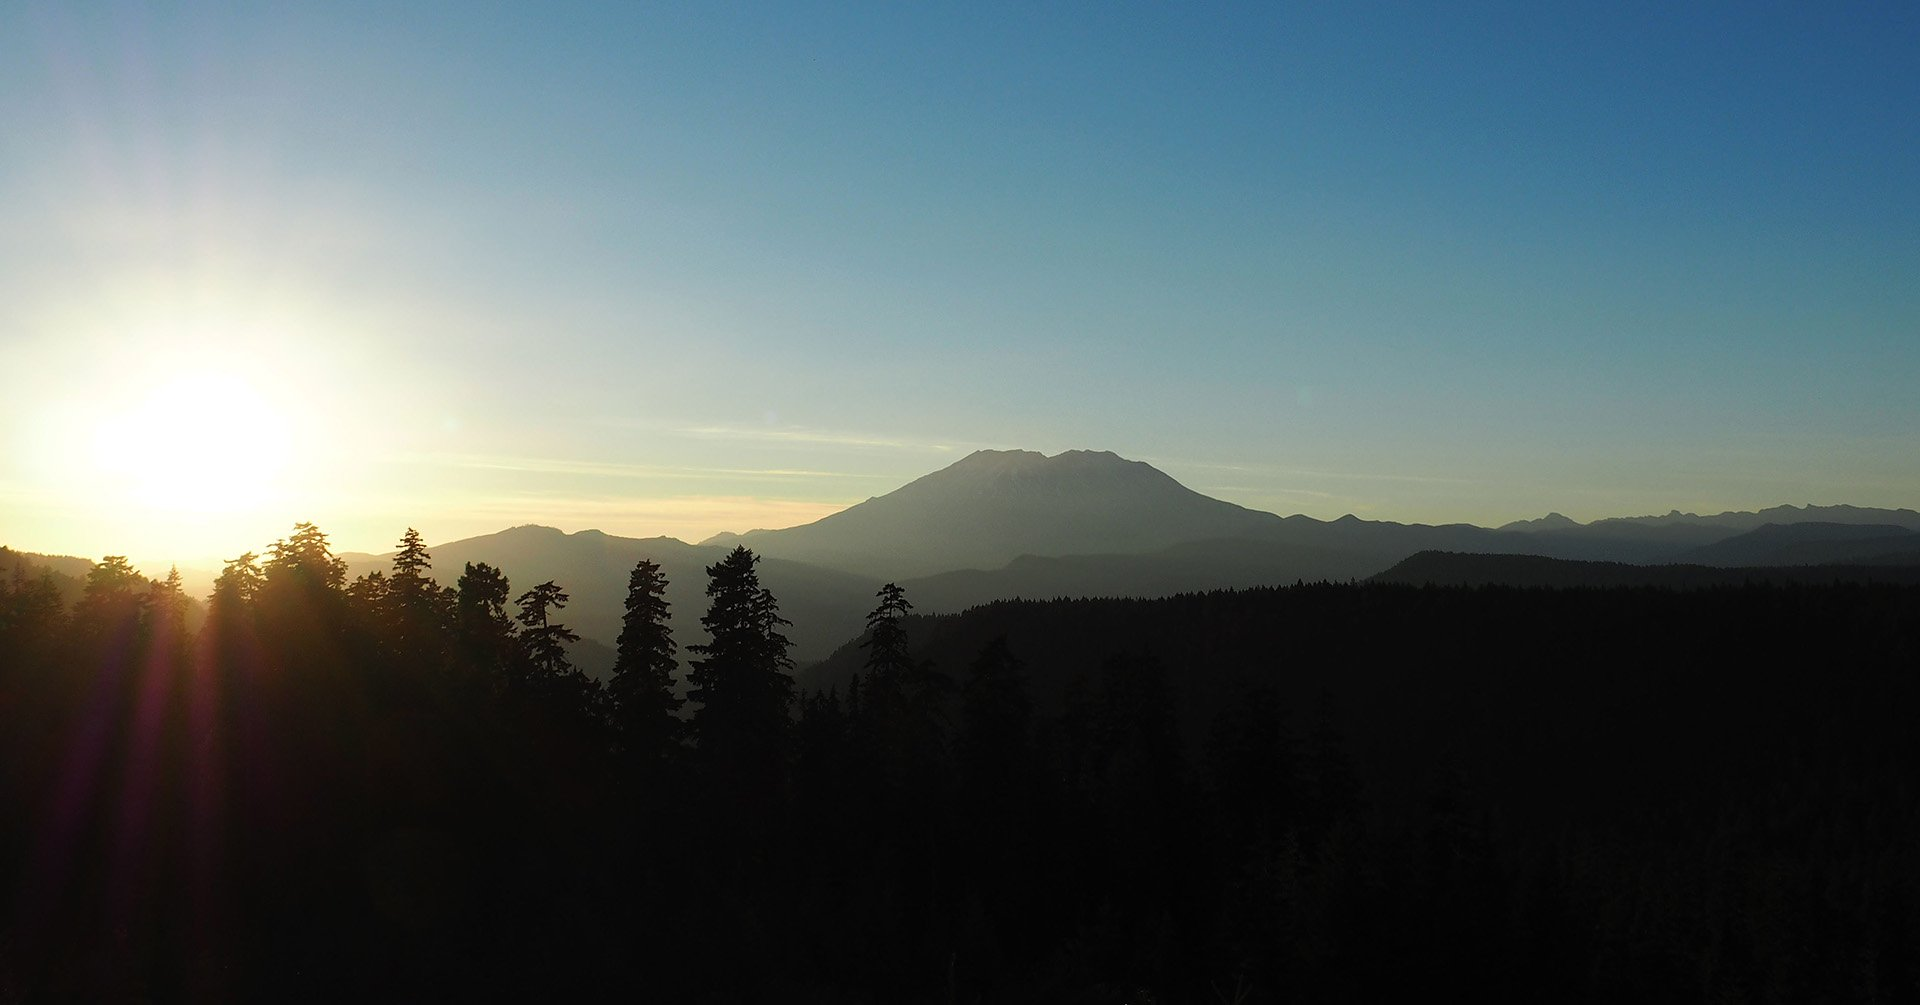 View of the Mount Helens from Gifford Pinchot National Forest, USA